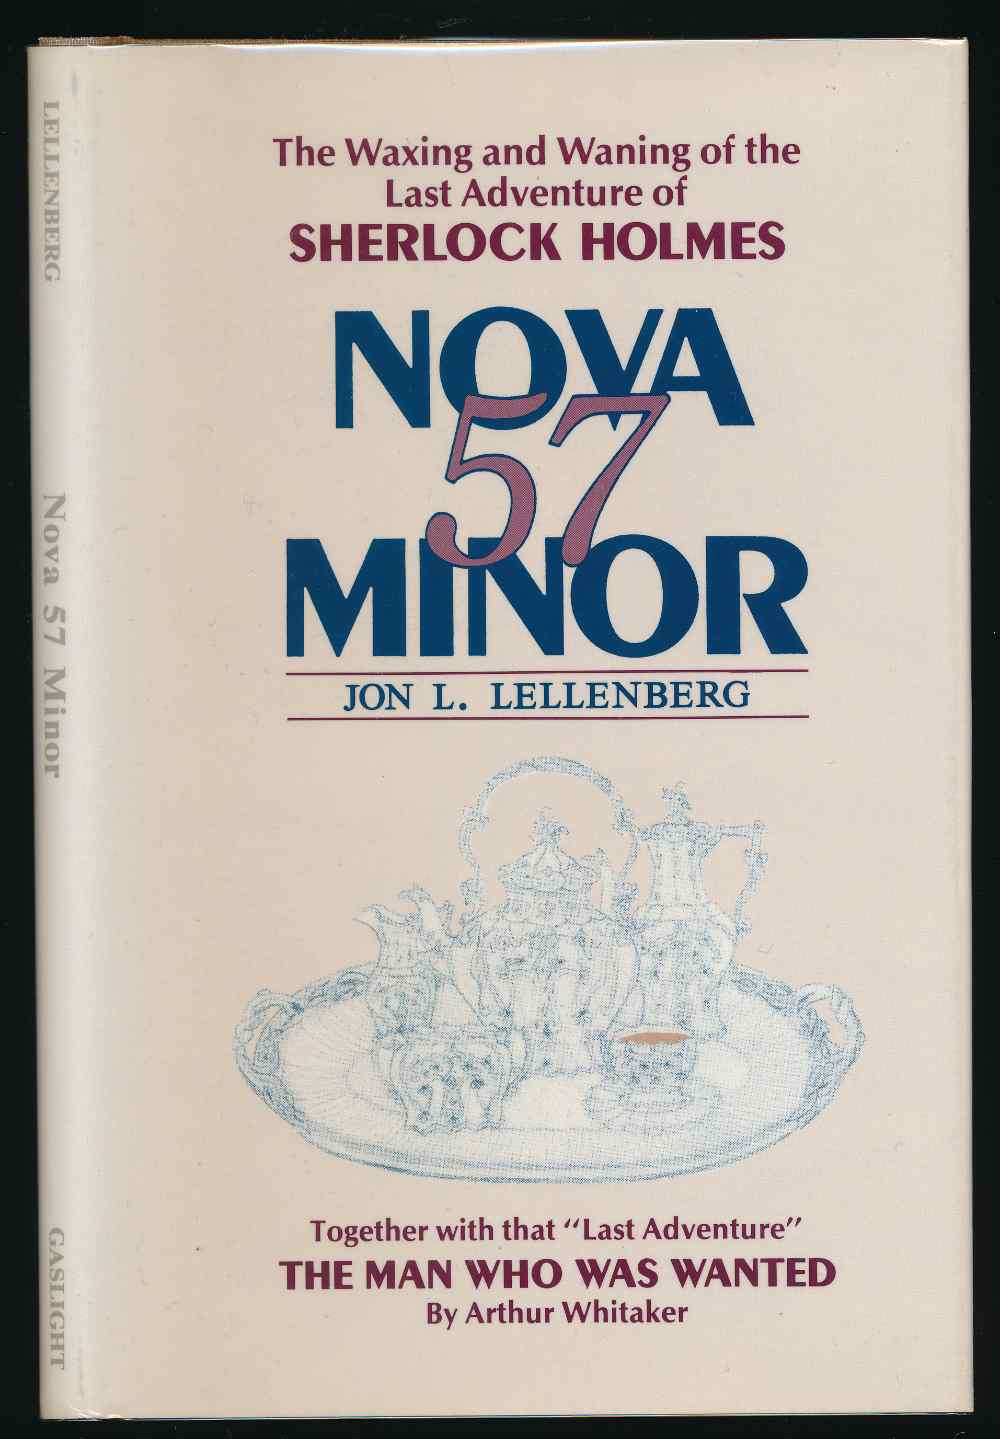 Nova 57 minor : the waxing and waning of the sixty-first adventure of Sherlock Holmes